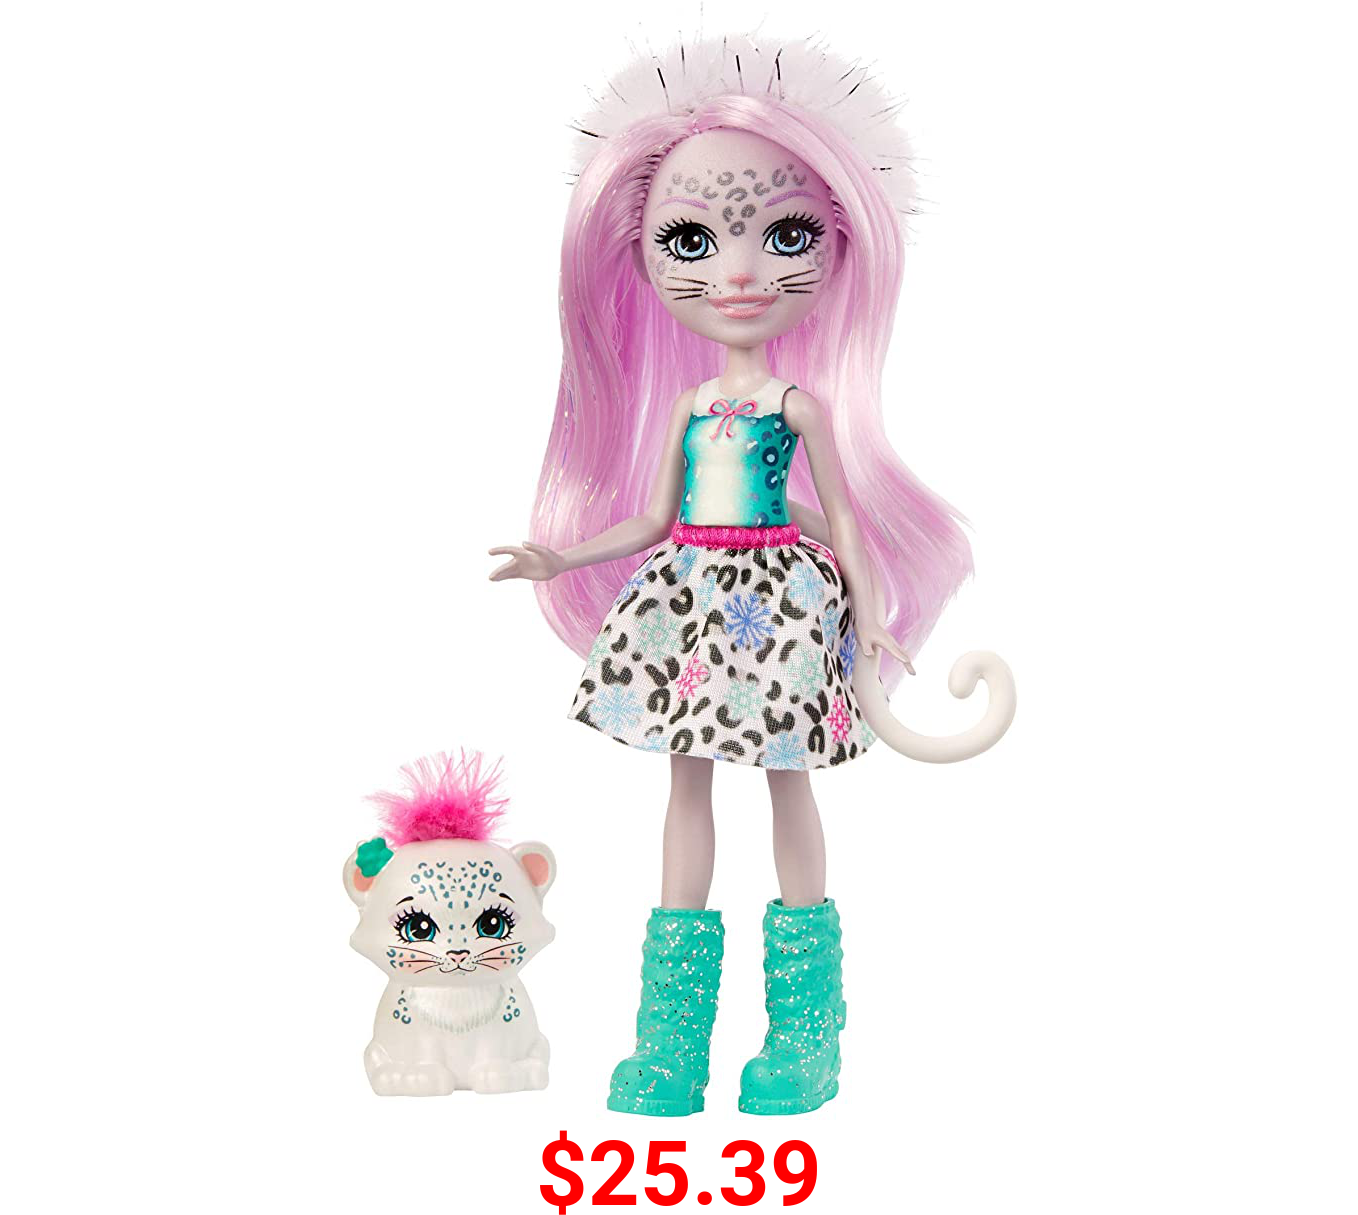 Enchantimals Sybill Snow Leopard Small Doll (6-in) & Flake Animal Friend Figure, 6-inch Small Doll with Removable Skirt, Snow boots, and Fur Headband, Great Gift for 3 to 8 Year Olds